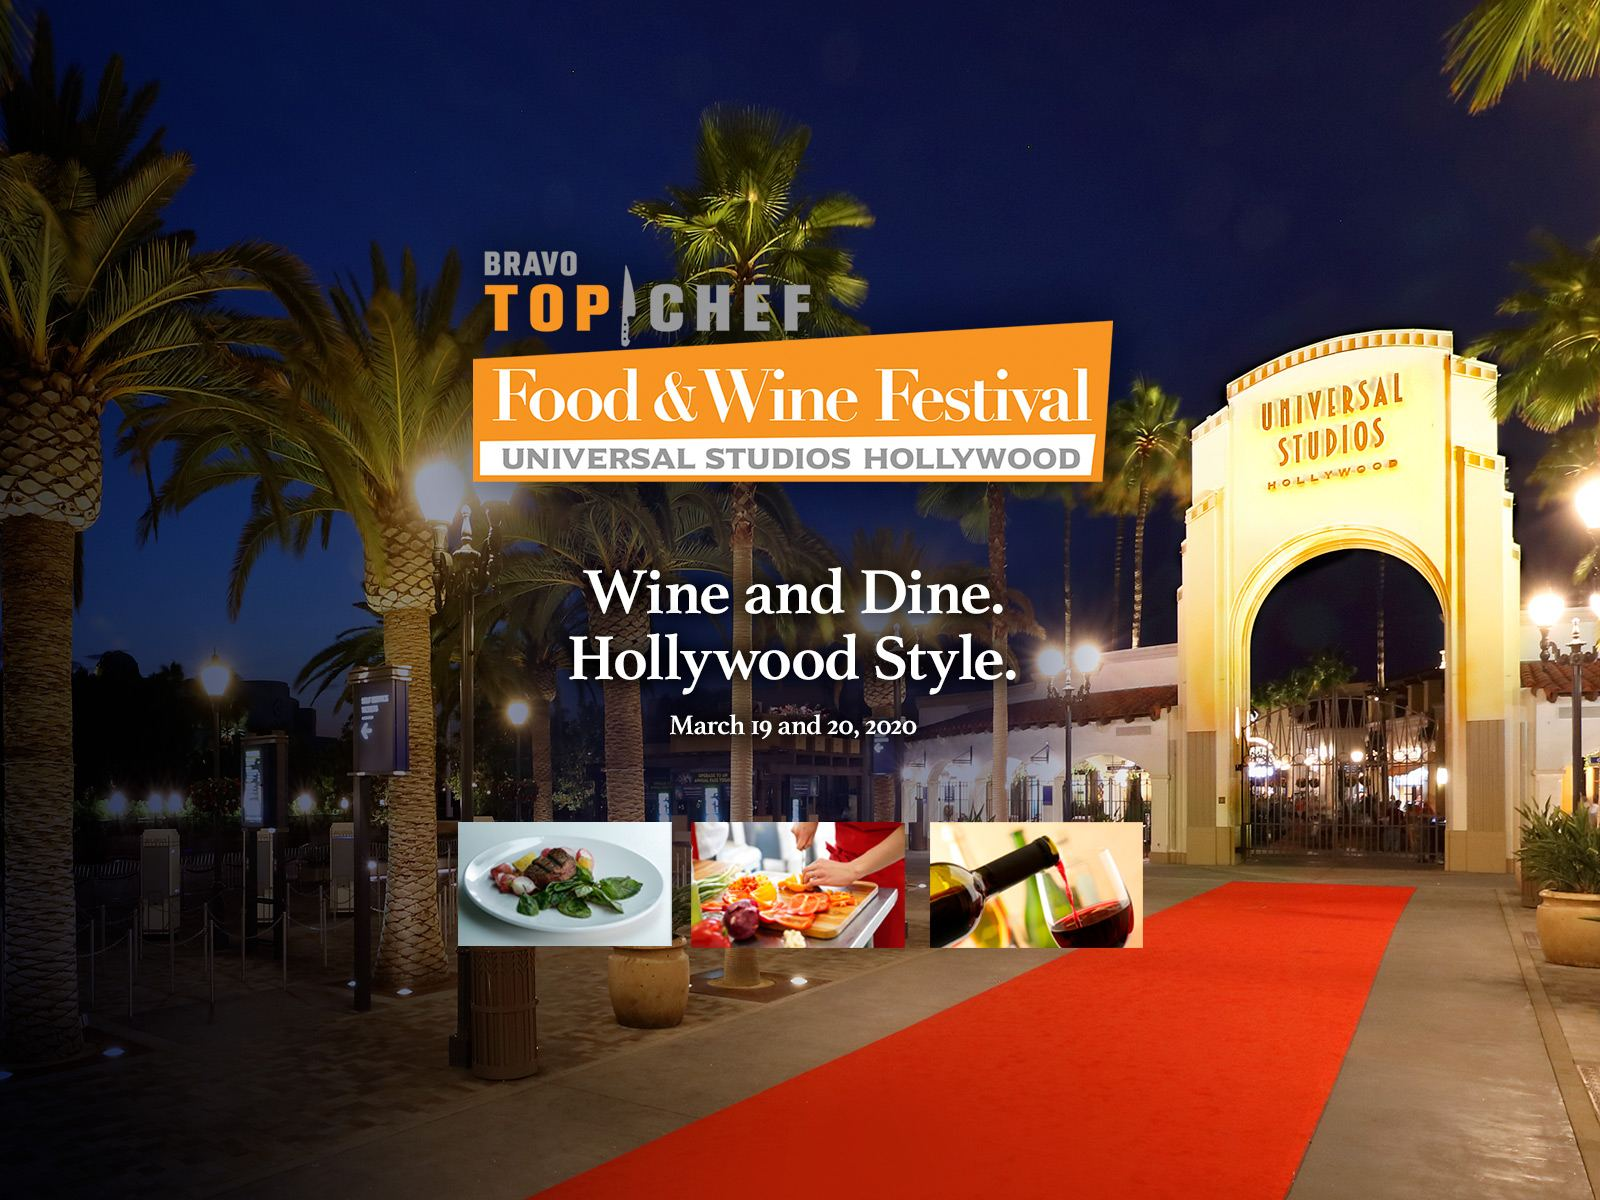 Main image for event titled Bravo's Top Chef Food & Wine Festival at Universal Studios Hollywood